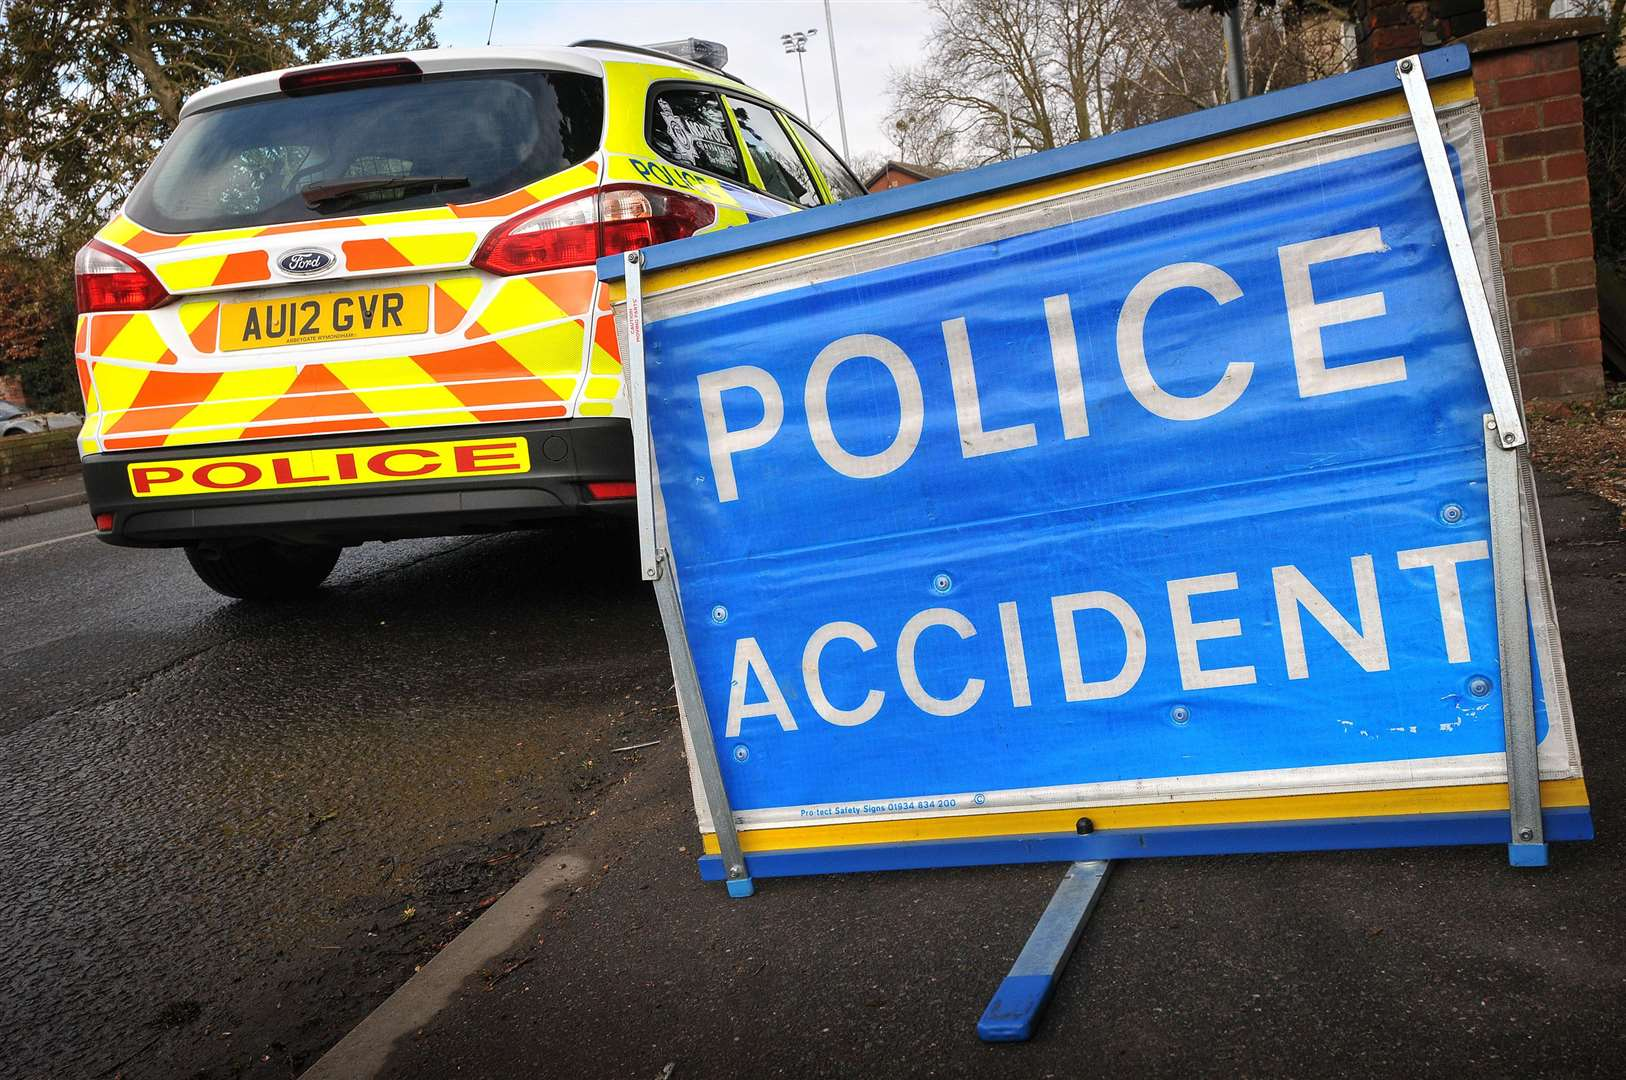 Police on the scene of an RTC - Norfolk Police accident sign. (51828056)